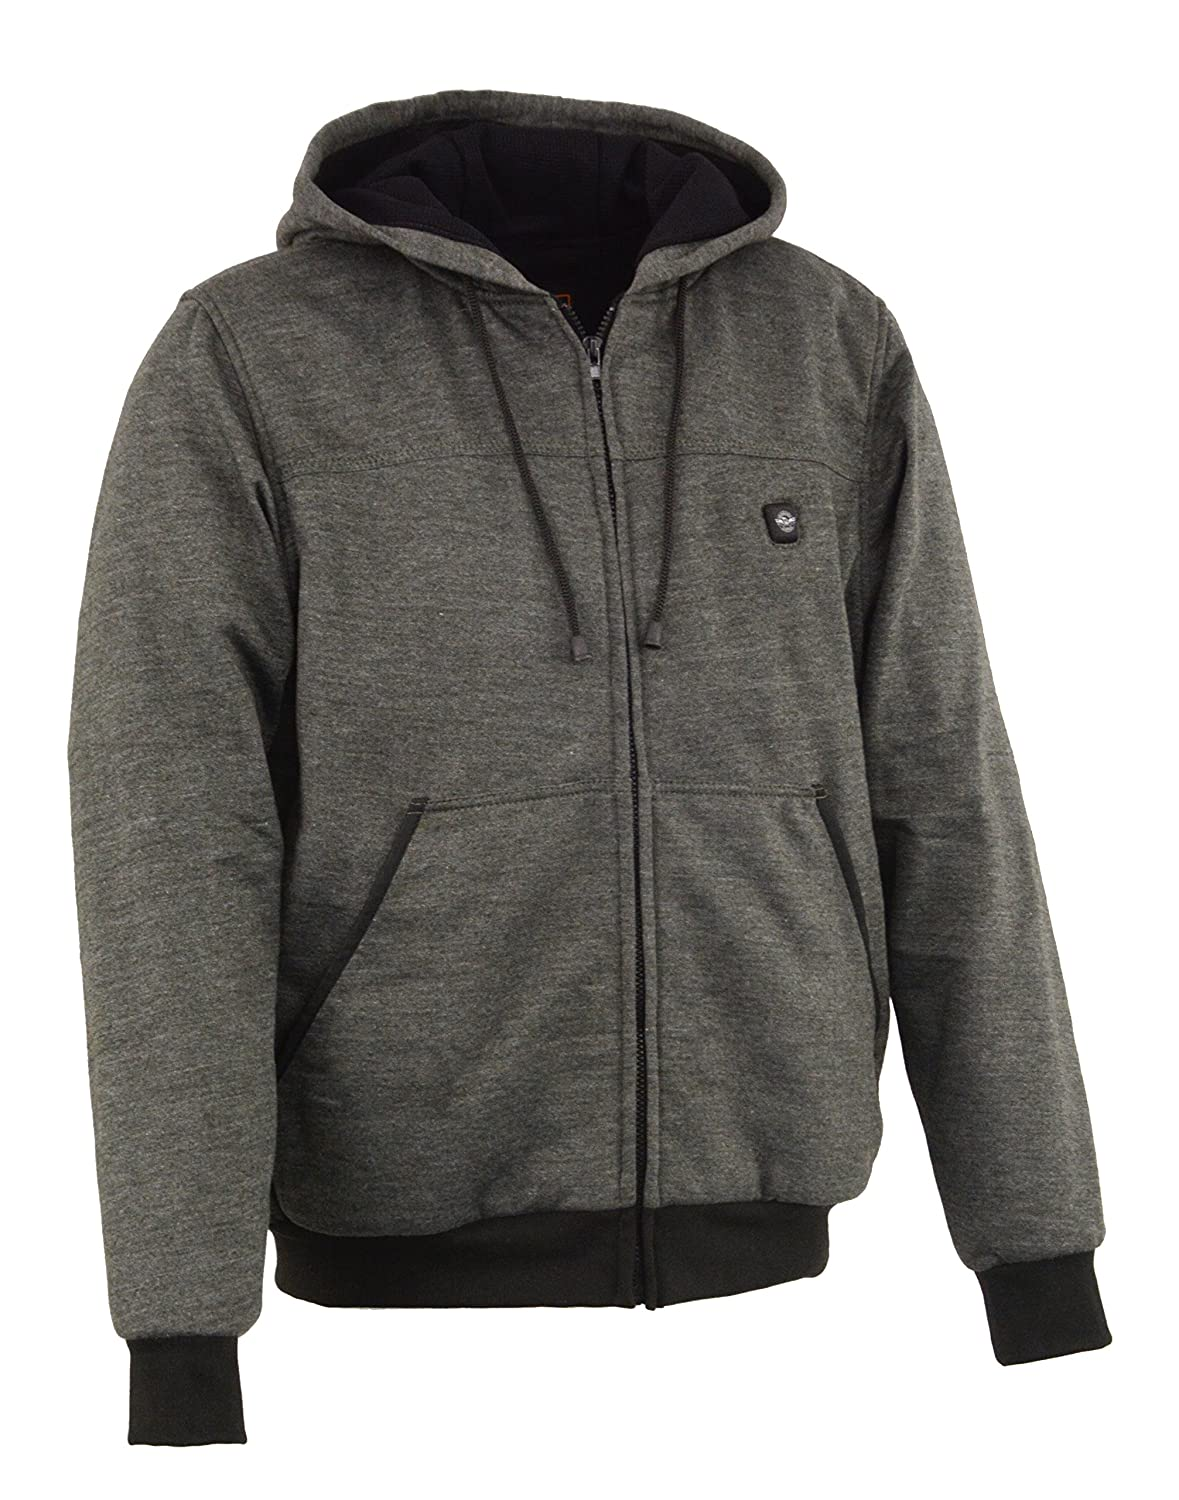 Milwaukee Performance-Mens Heated Hoodie w//Front/&Back Heating Elements-BATTERY PACK INCLUDED-GREY-Large